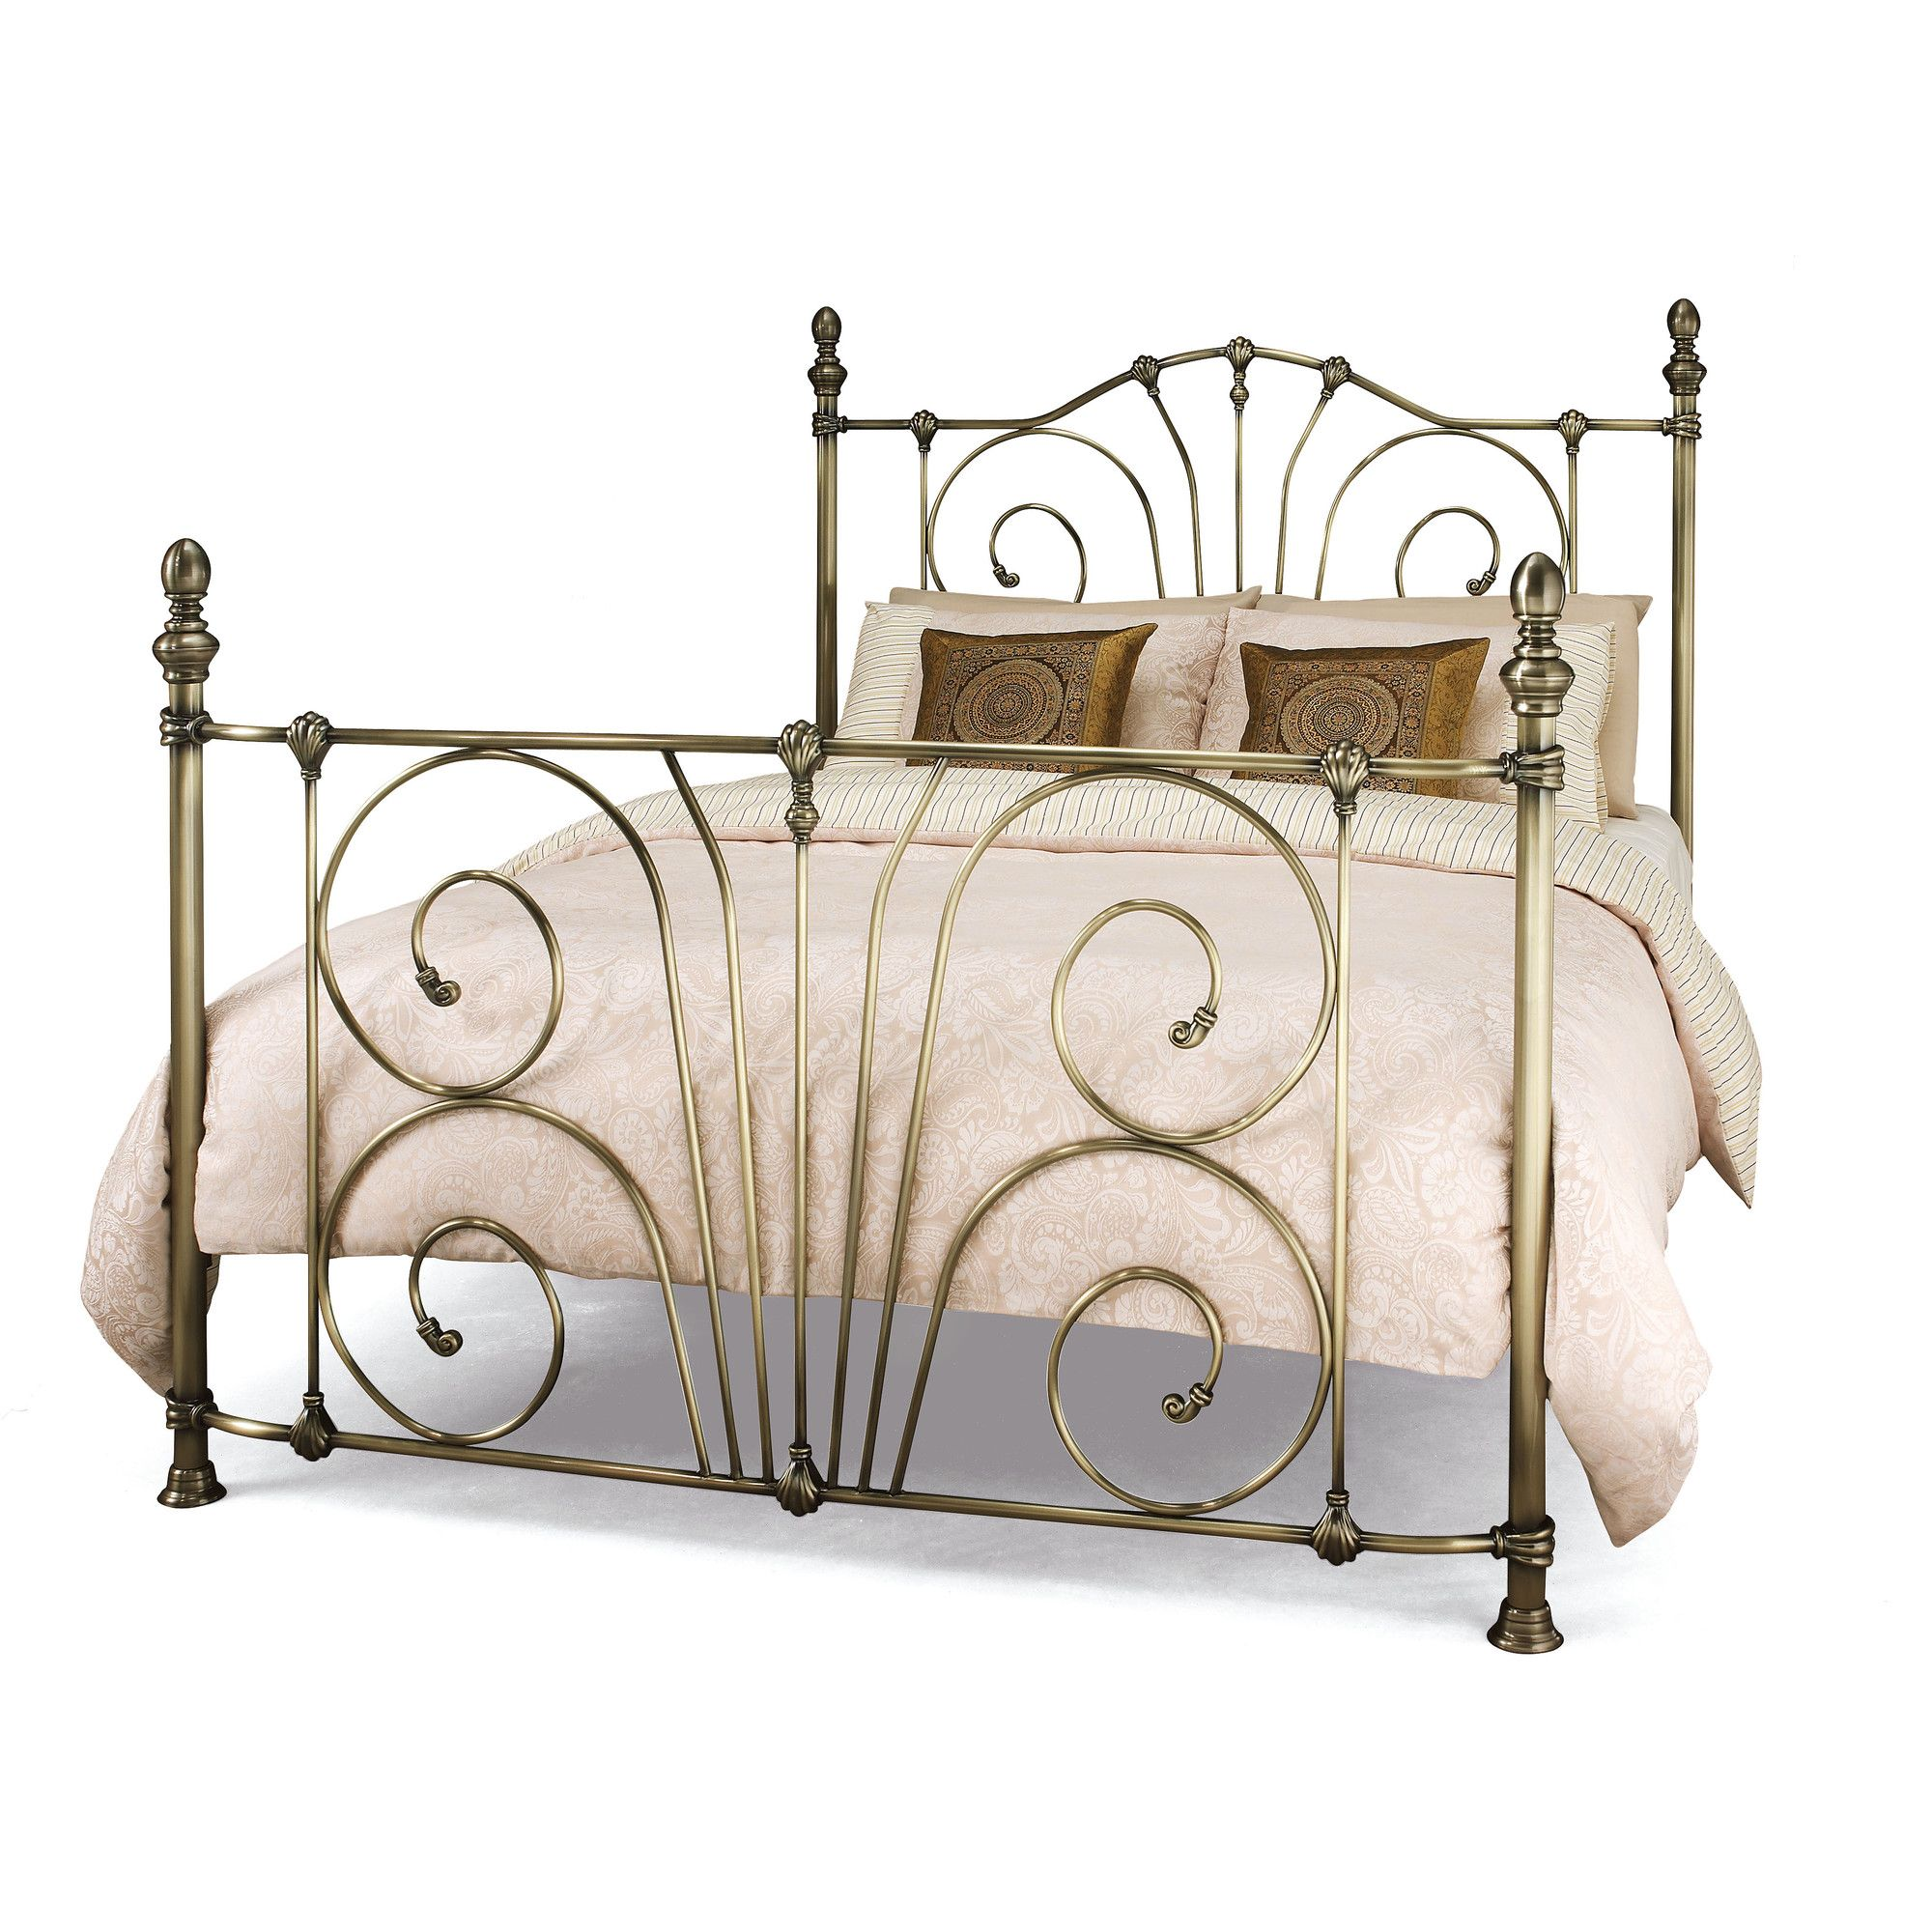 Serene Furnishings Jessica Bed Frame - Double - Antique Brass at Tescos Direct